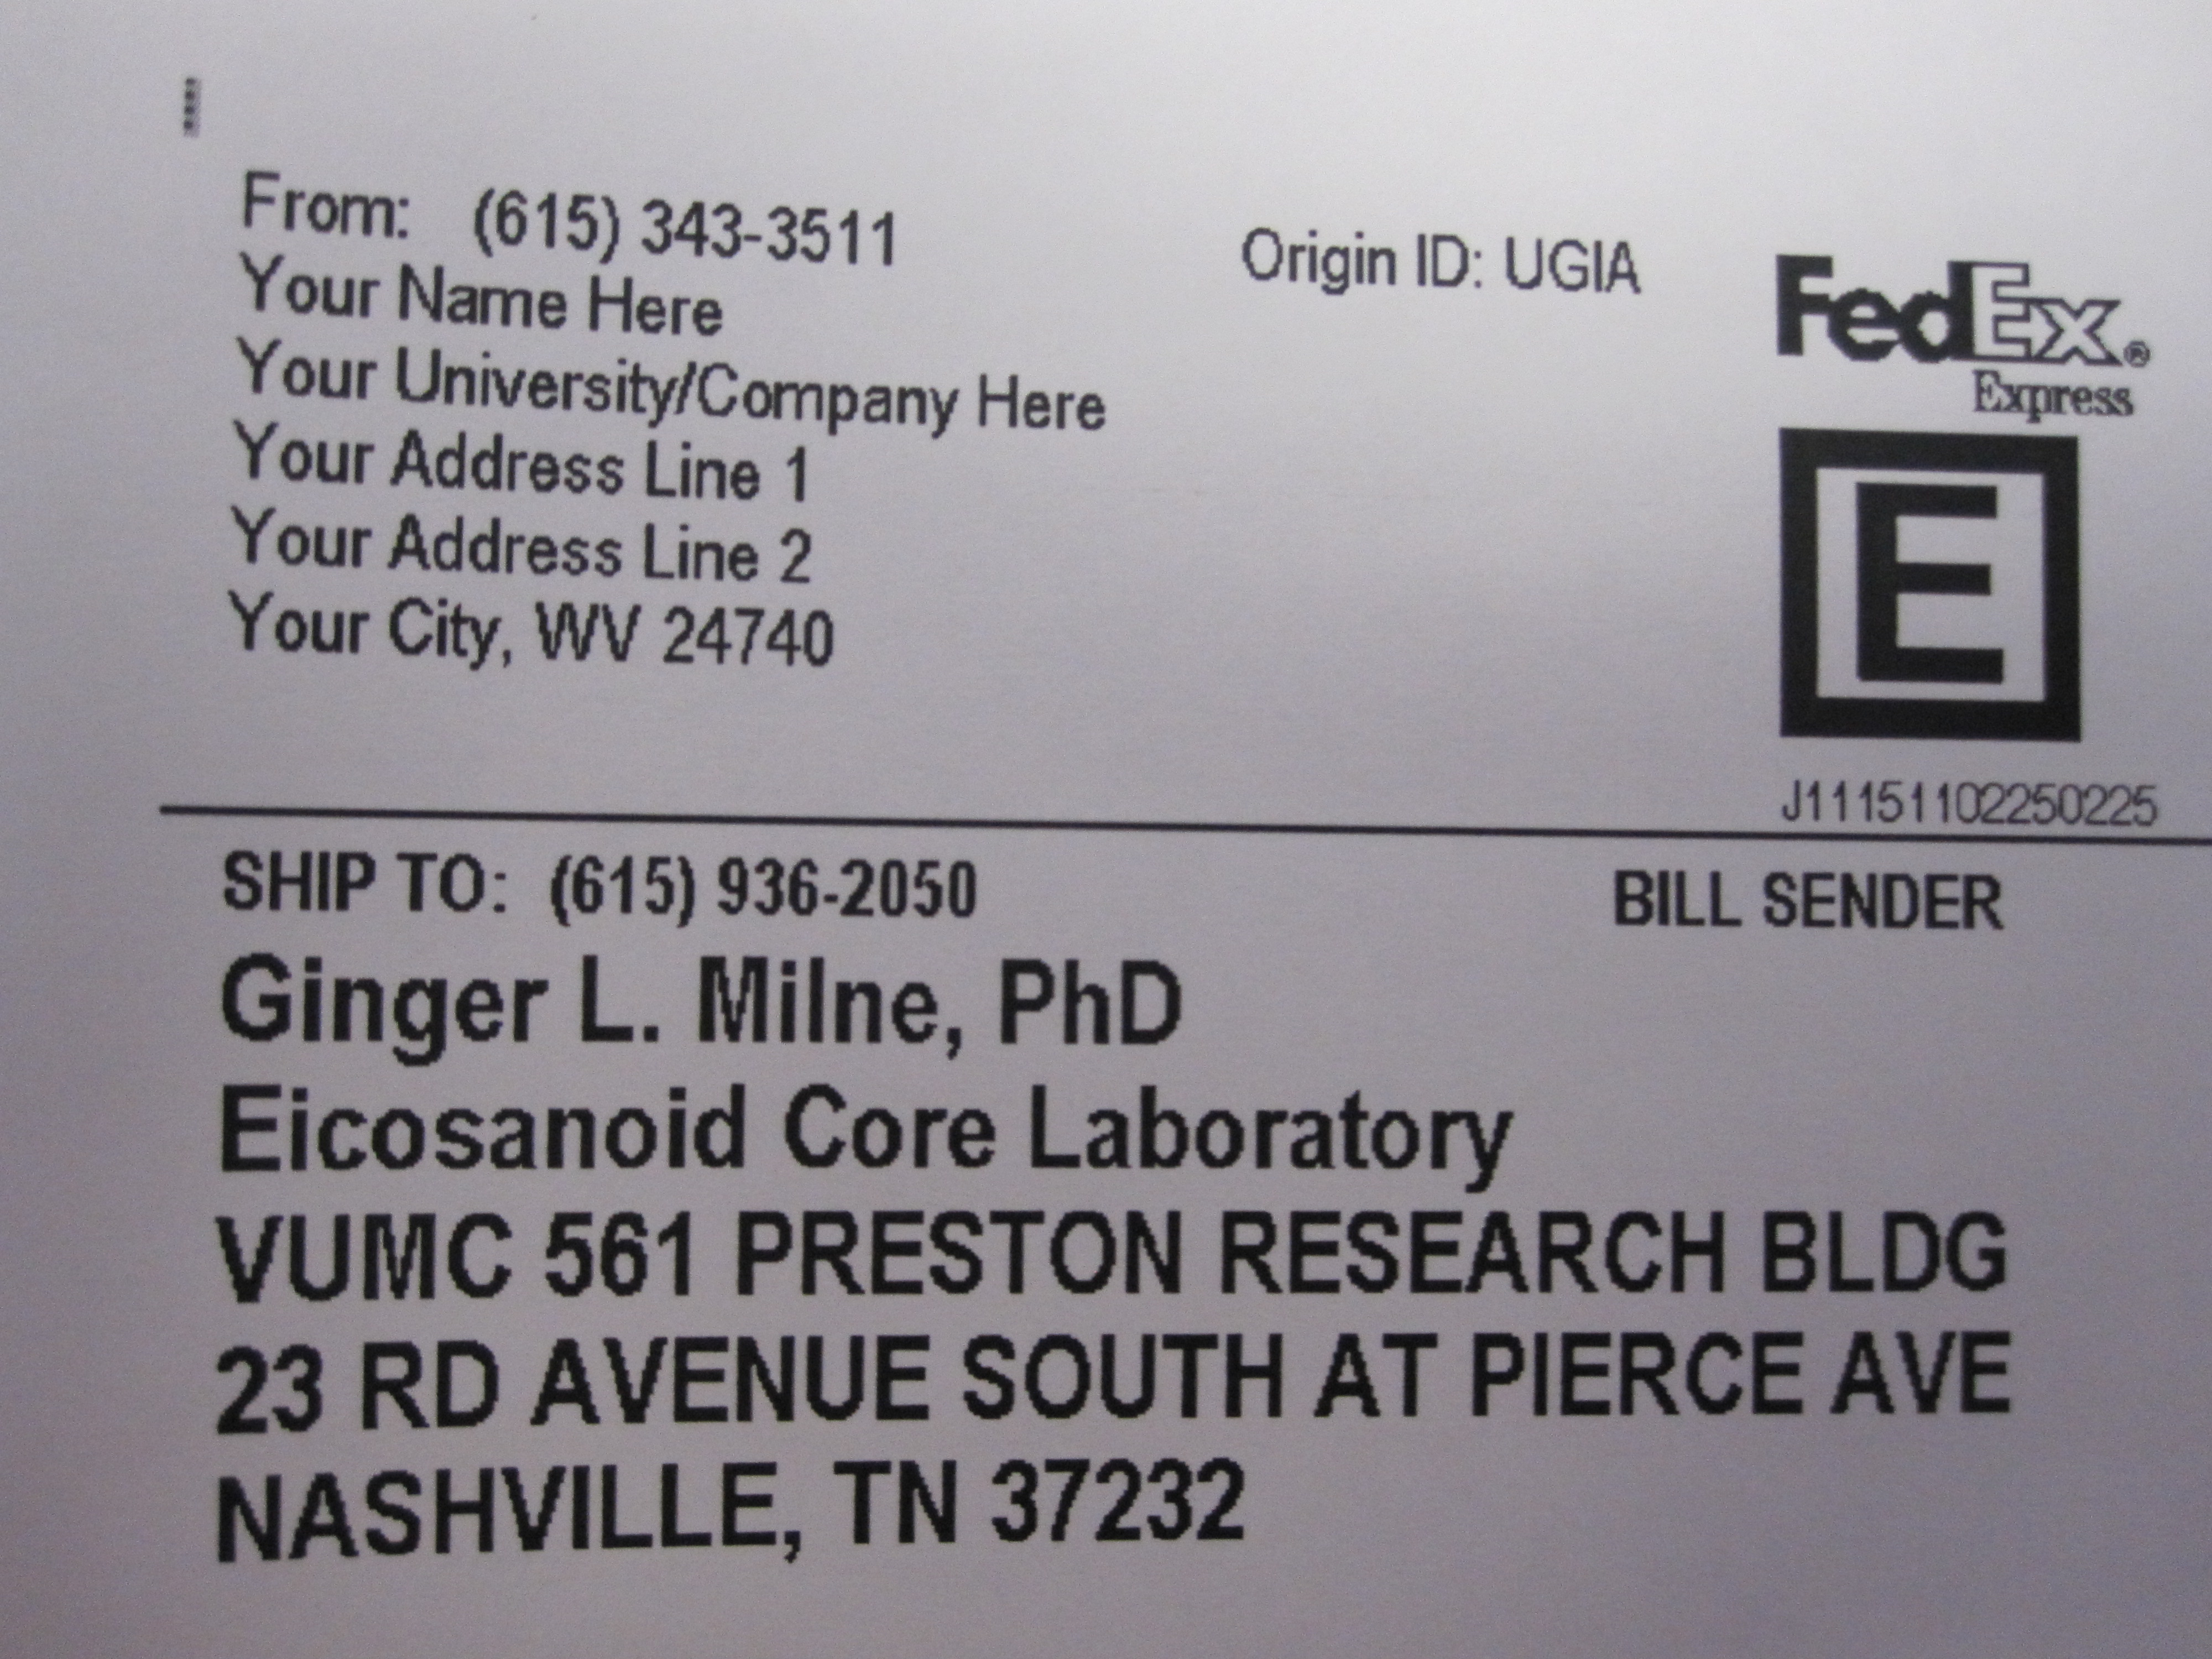 Example FedEx Shipping Label